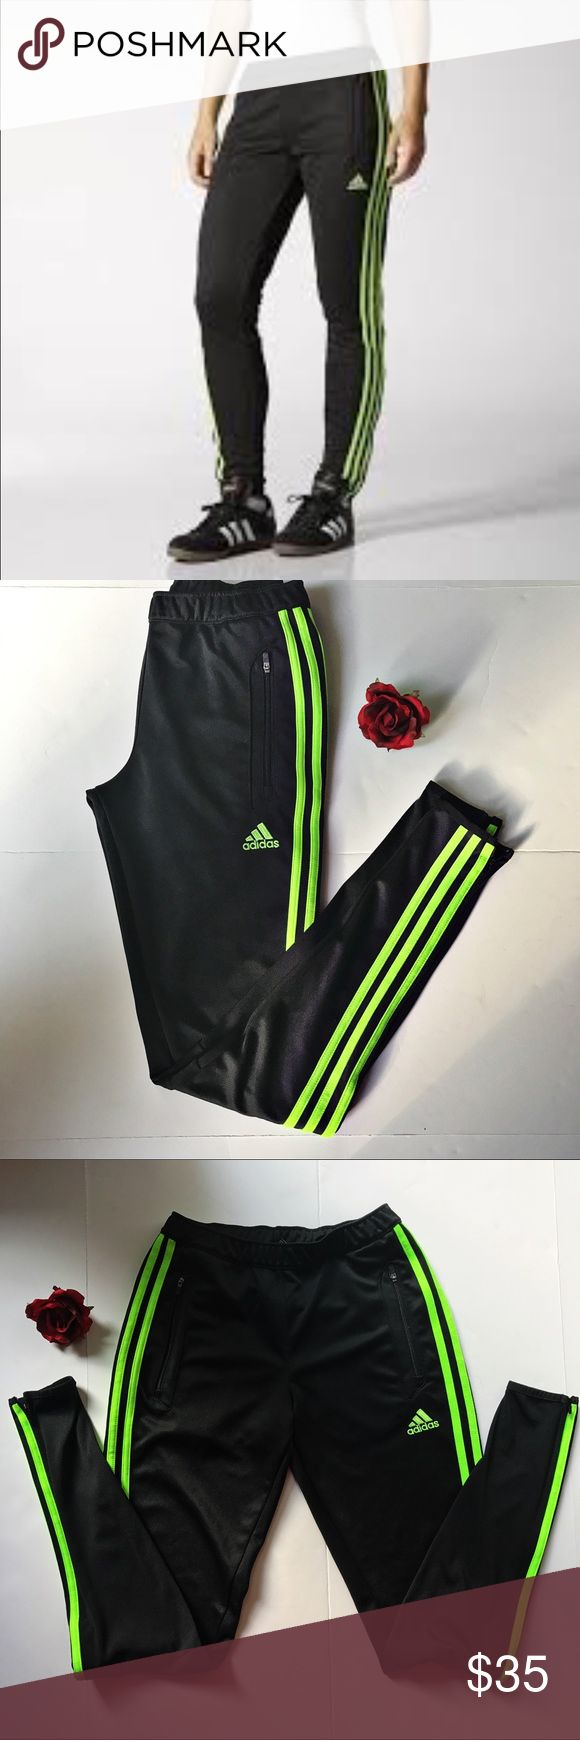 Adidas Women's Training Pants. Size XS. Warm up in comfort with style with this Adidas training pants. Constructed out of breathable Climacool materials with ventilation to keep you cool. They feature ankle zips and tapered fit. Pre-owned. Excellent condition. Adidas Pants Track Pants & Joggers